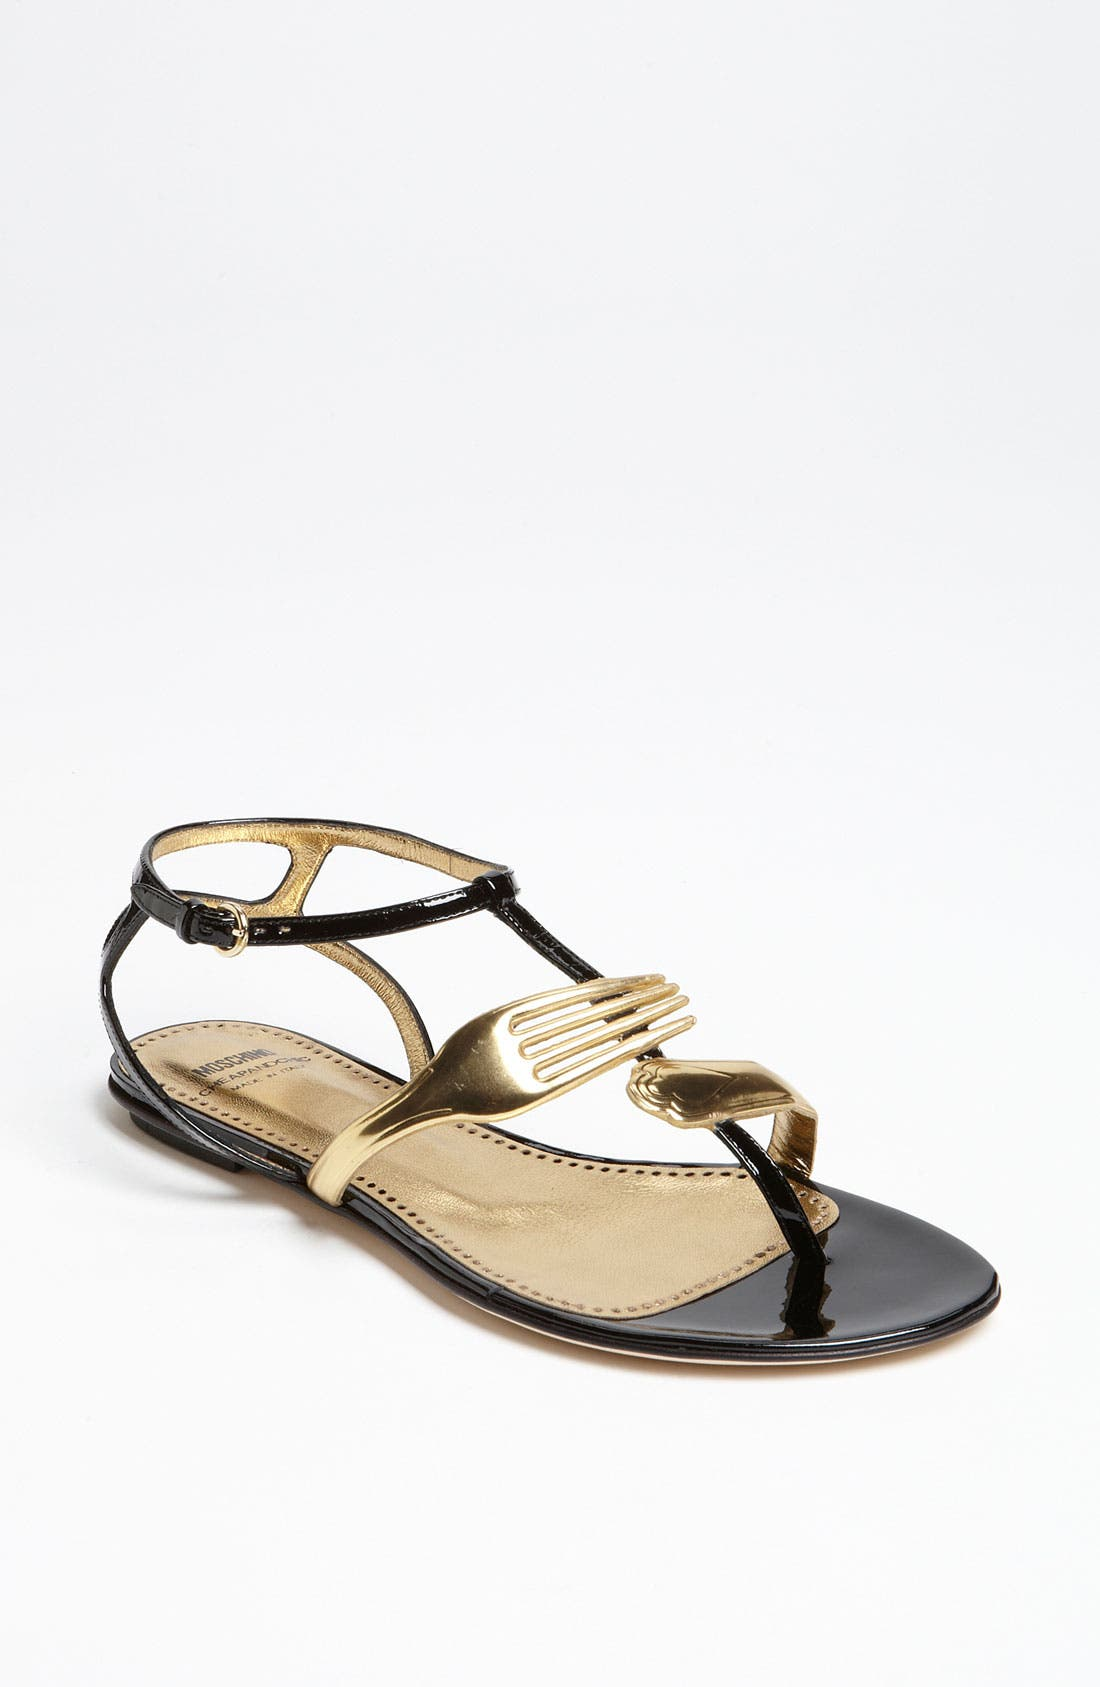 Main Image - Moschino Cheap & Chic 'Utensil' Sandal